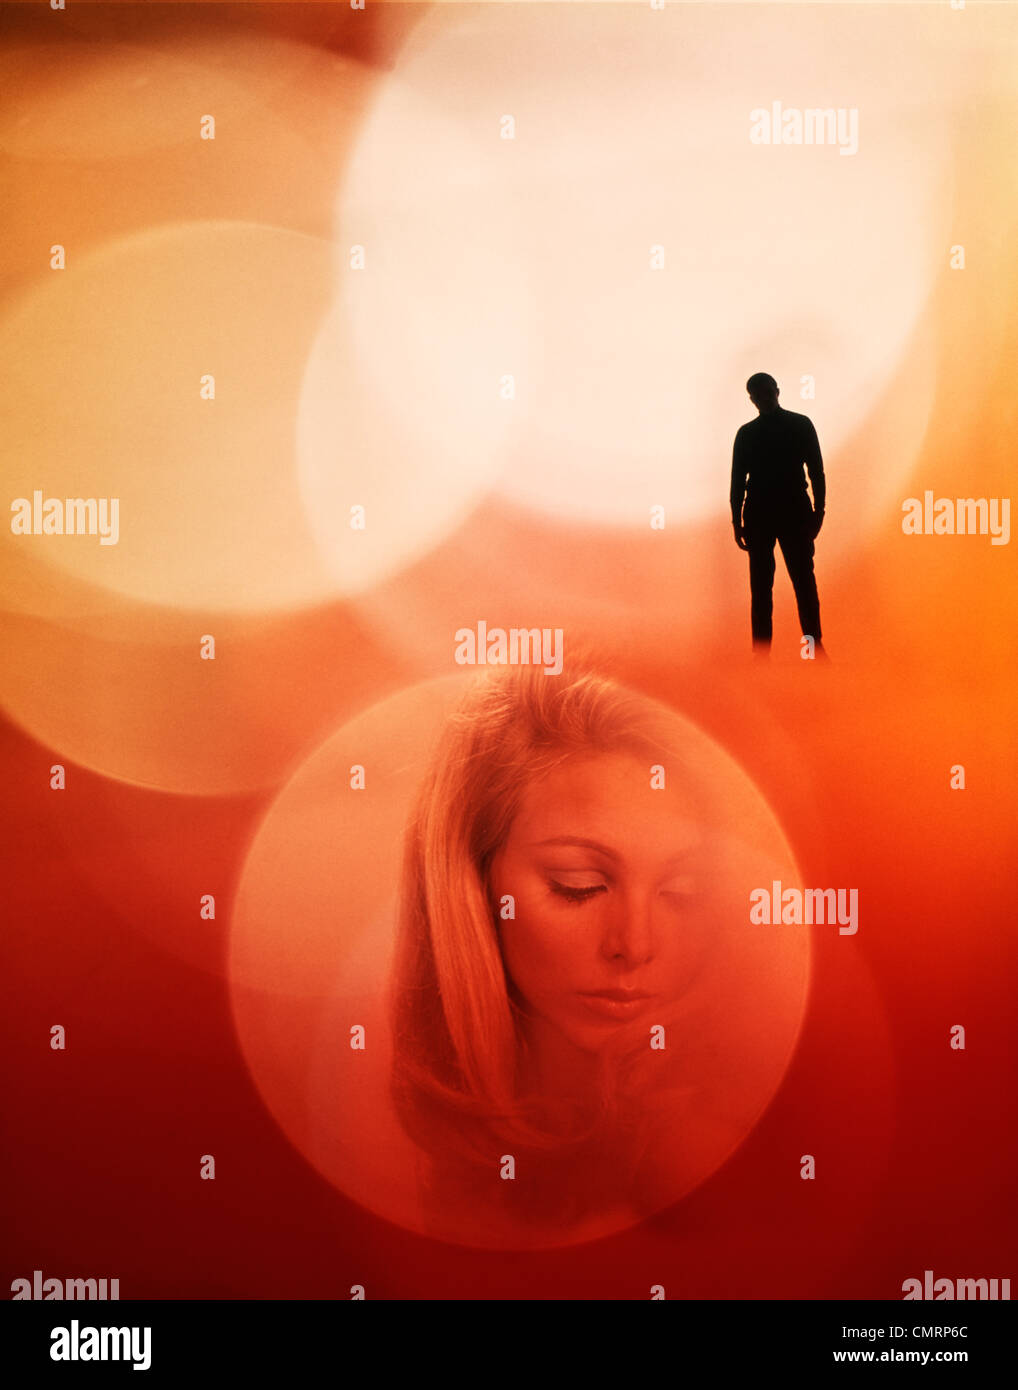 1970s 1970 LIGHT CIRCLES ON RED MAN IN SILHOUETTE & FACE OF WOMAN COUPLE SAD STRANGE SEPARATE MYSTERIOUS RETRO - Stock Image